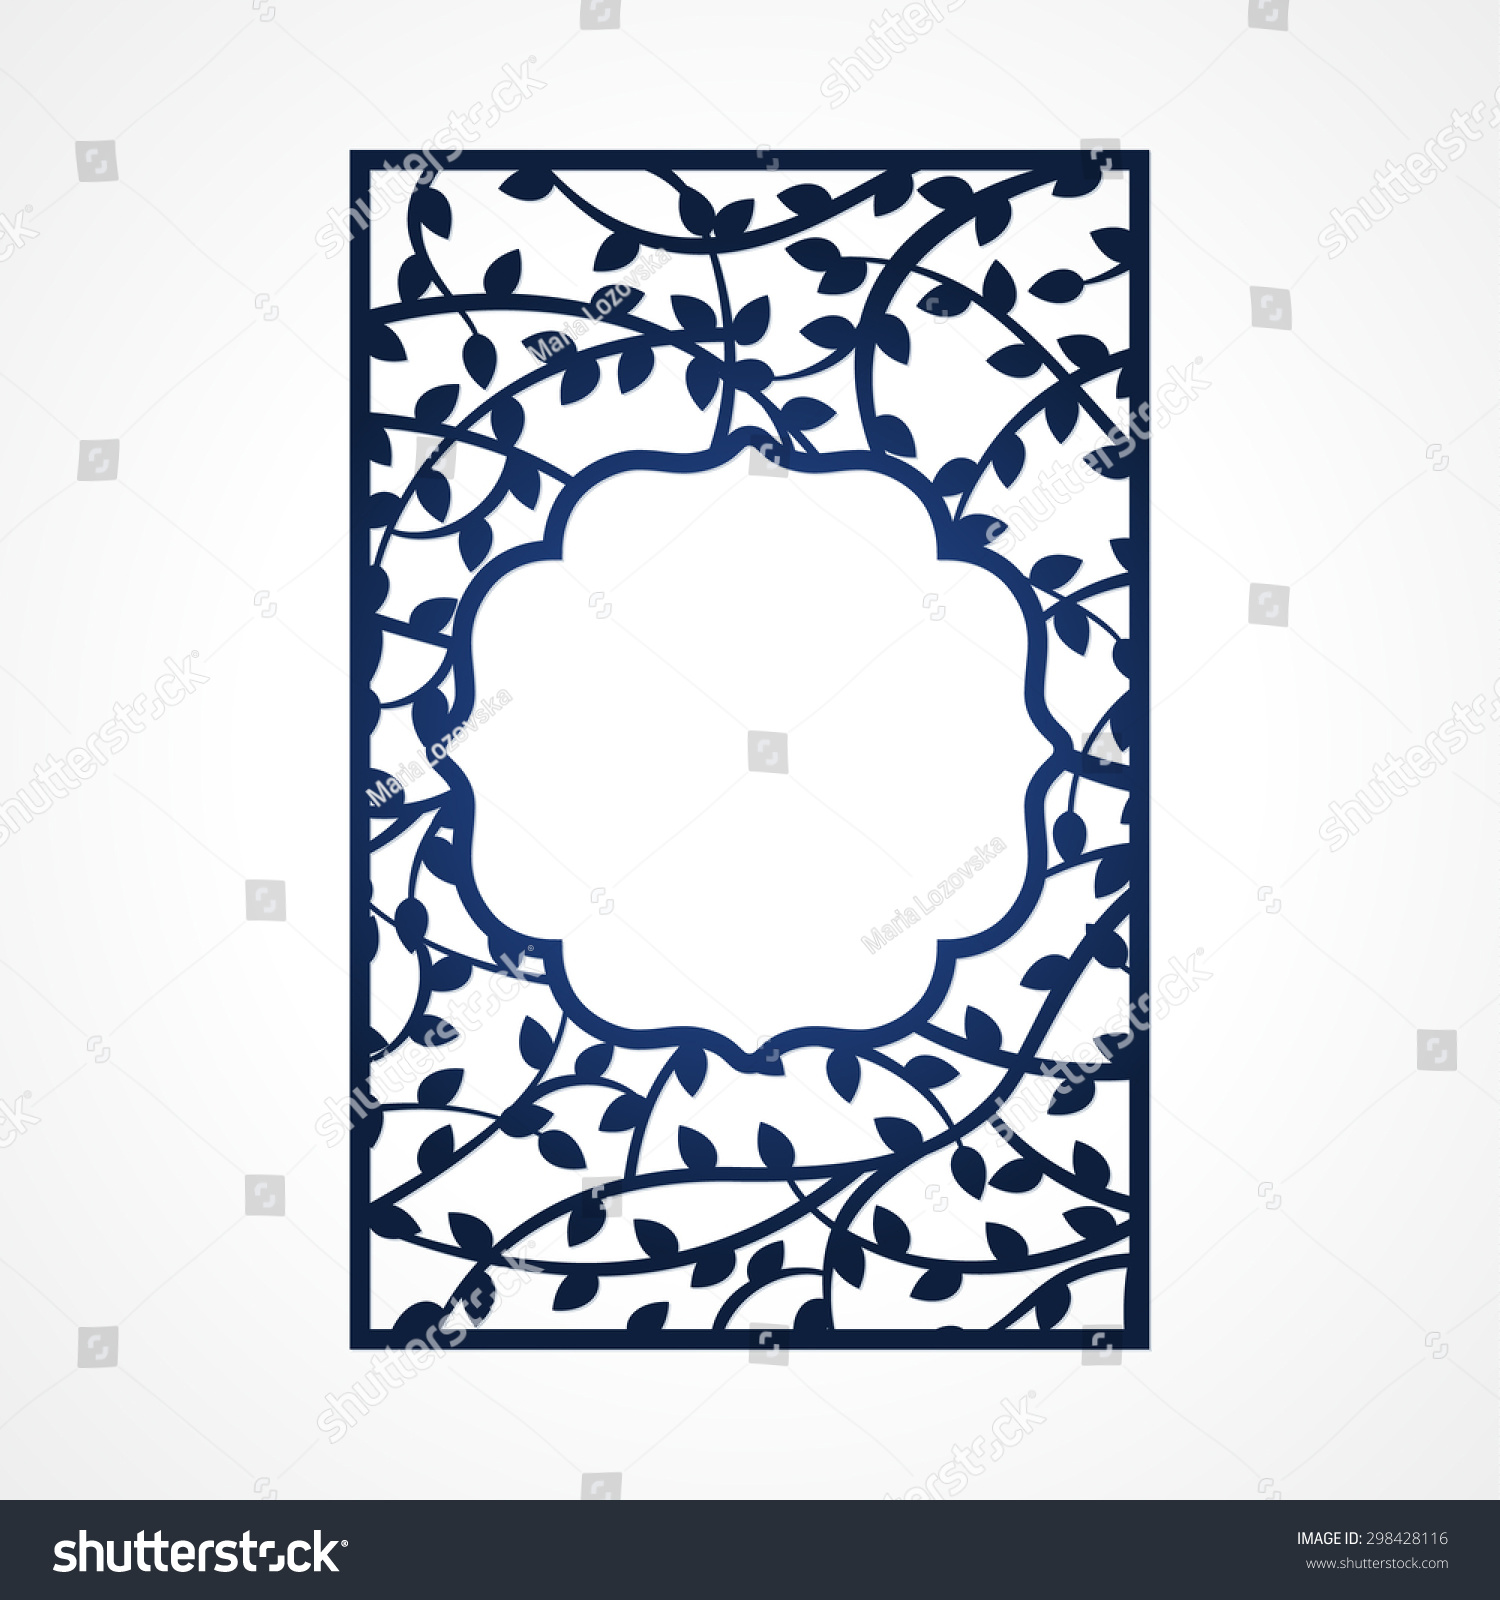 Abstract Vector Frame Tree Branches May Stock Vector 298428116 ...